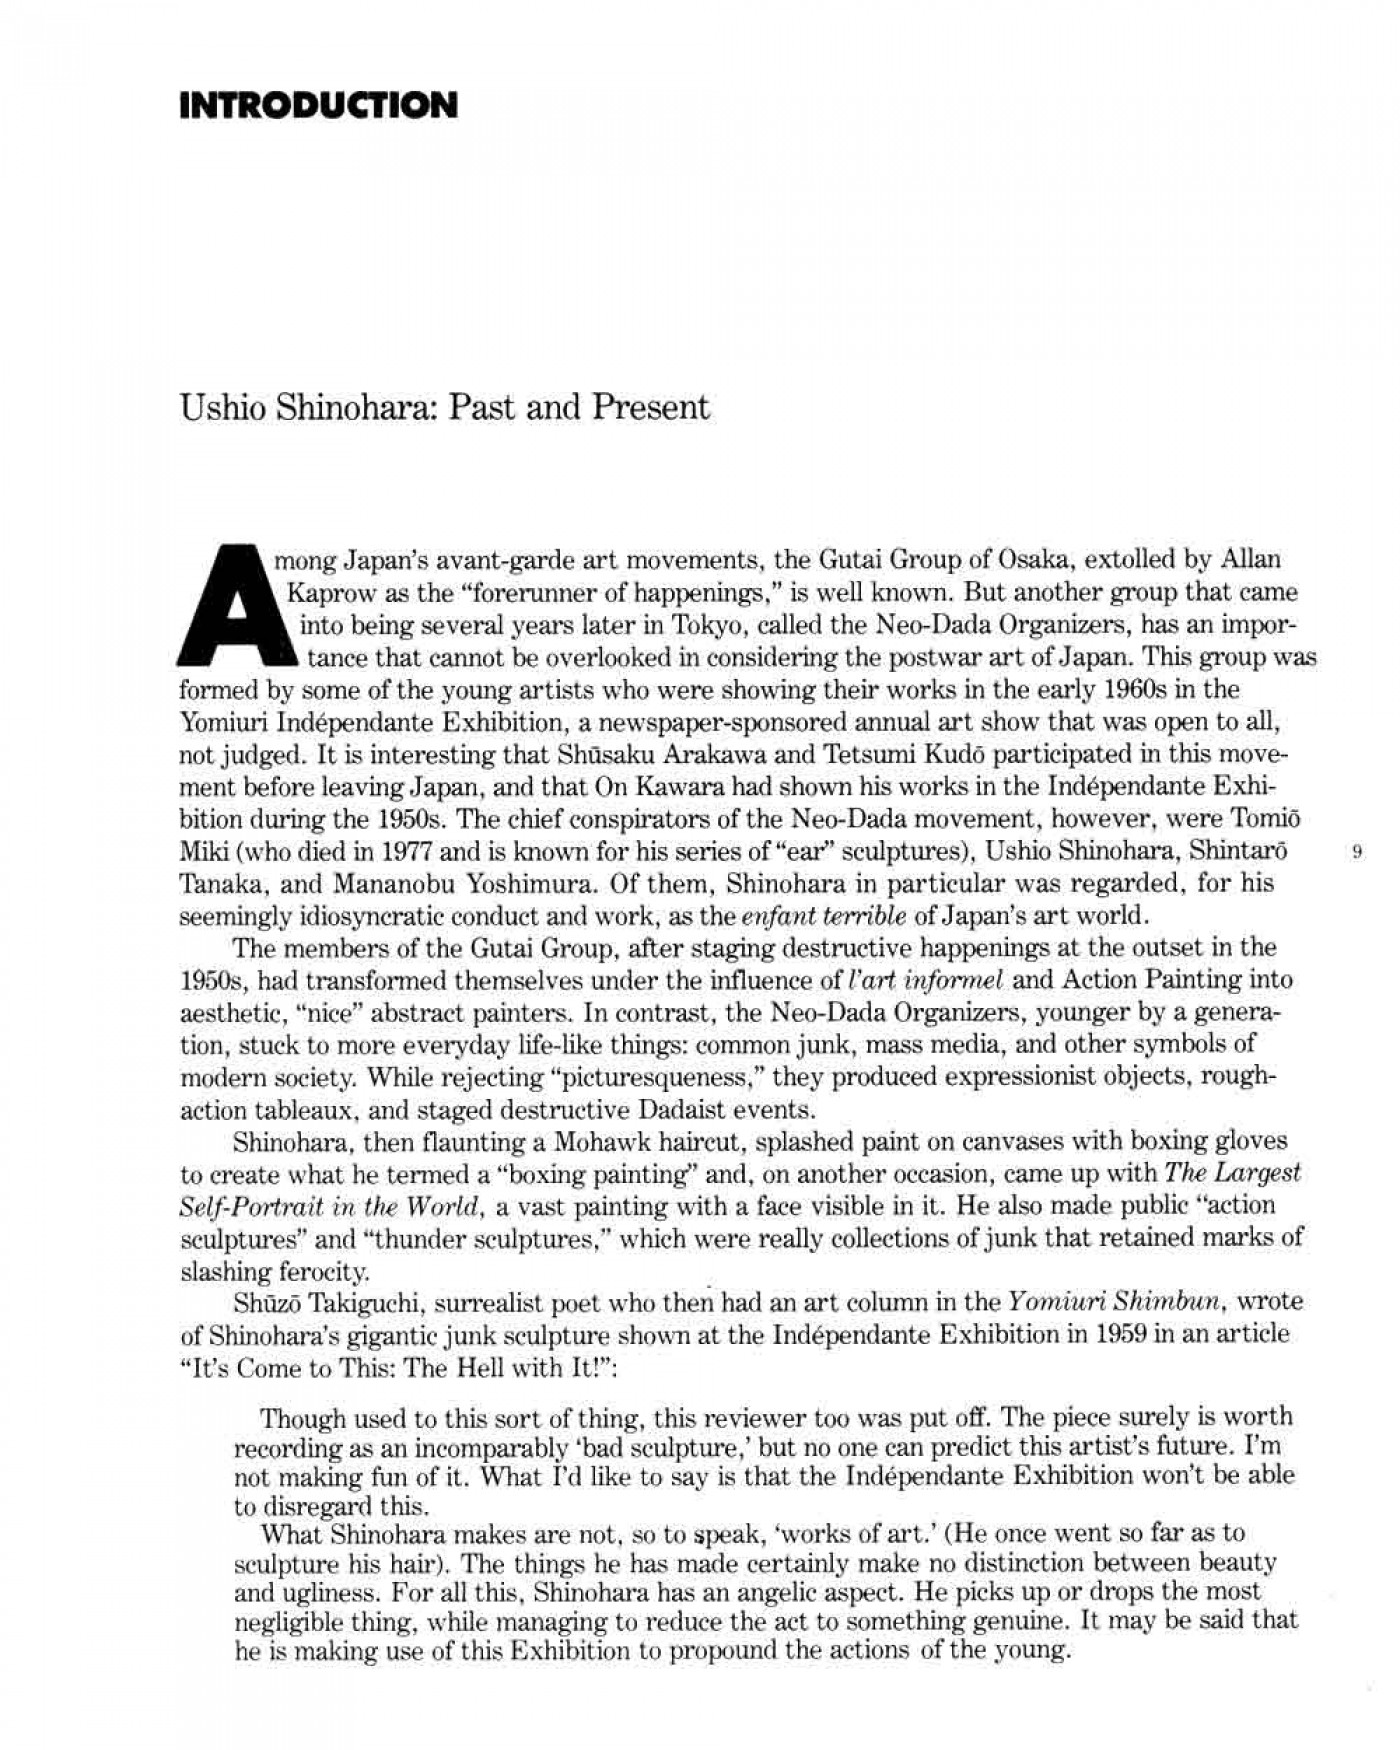 005 How To Cite An Essay Example Ushio Shinohara Past And Present Pg 1 Archaicawful Mla In A Book 8th Edition 1400